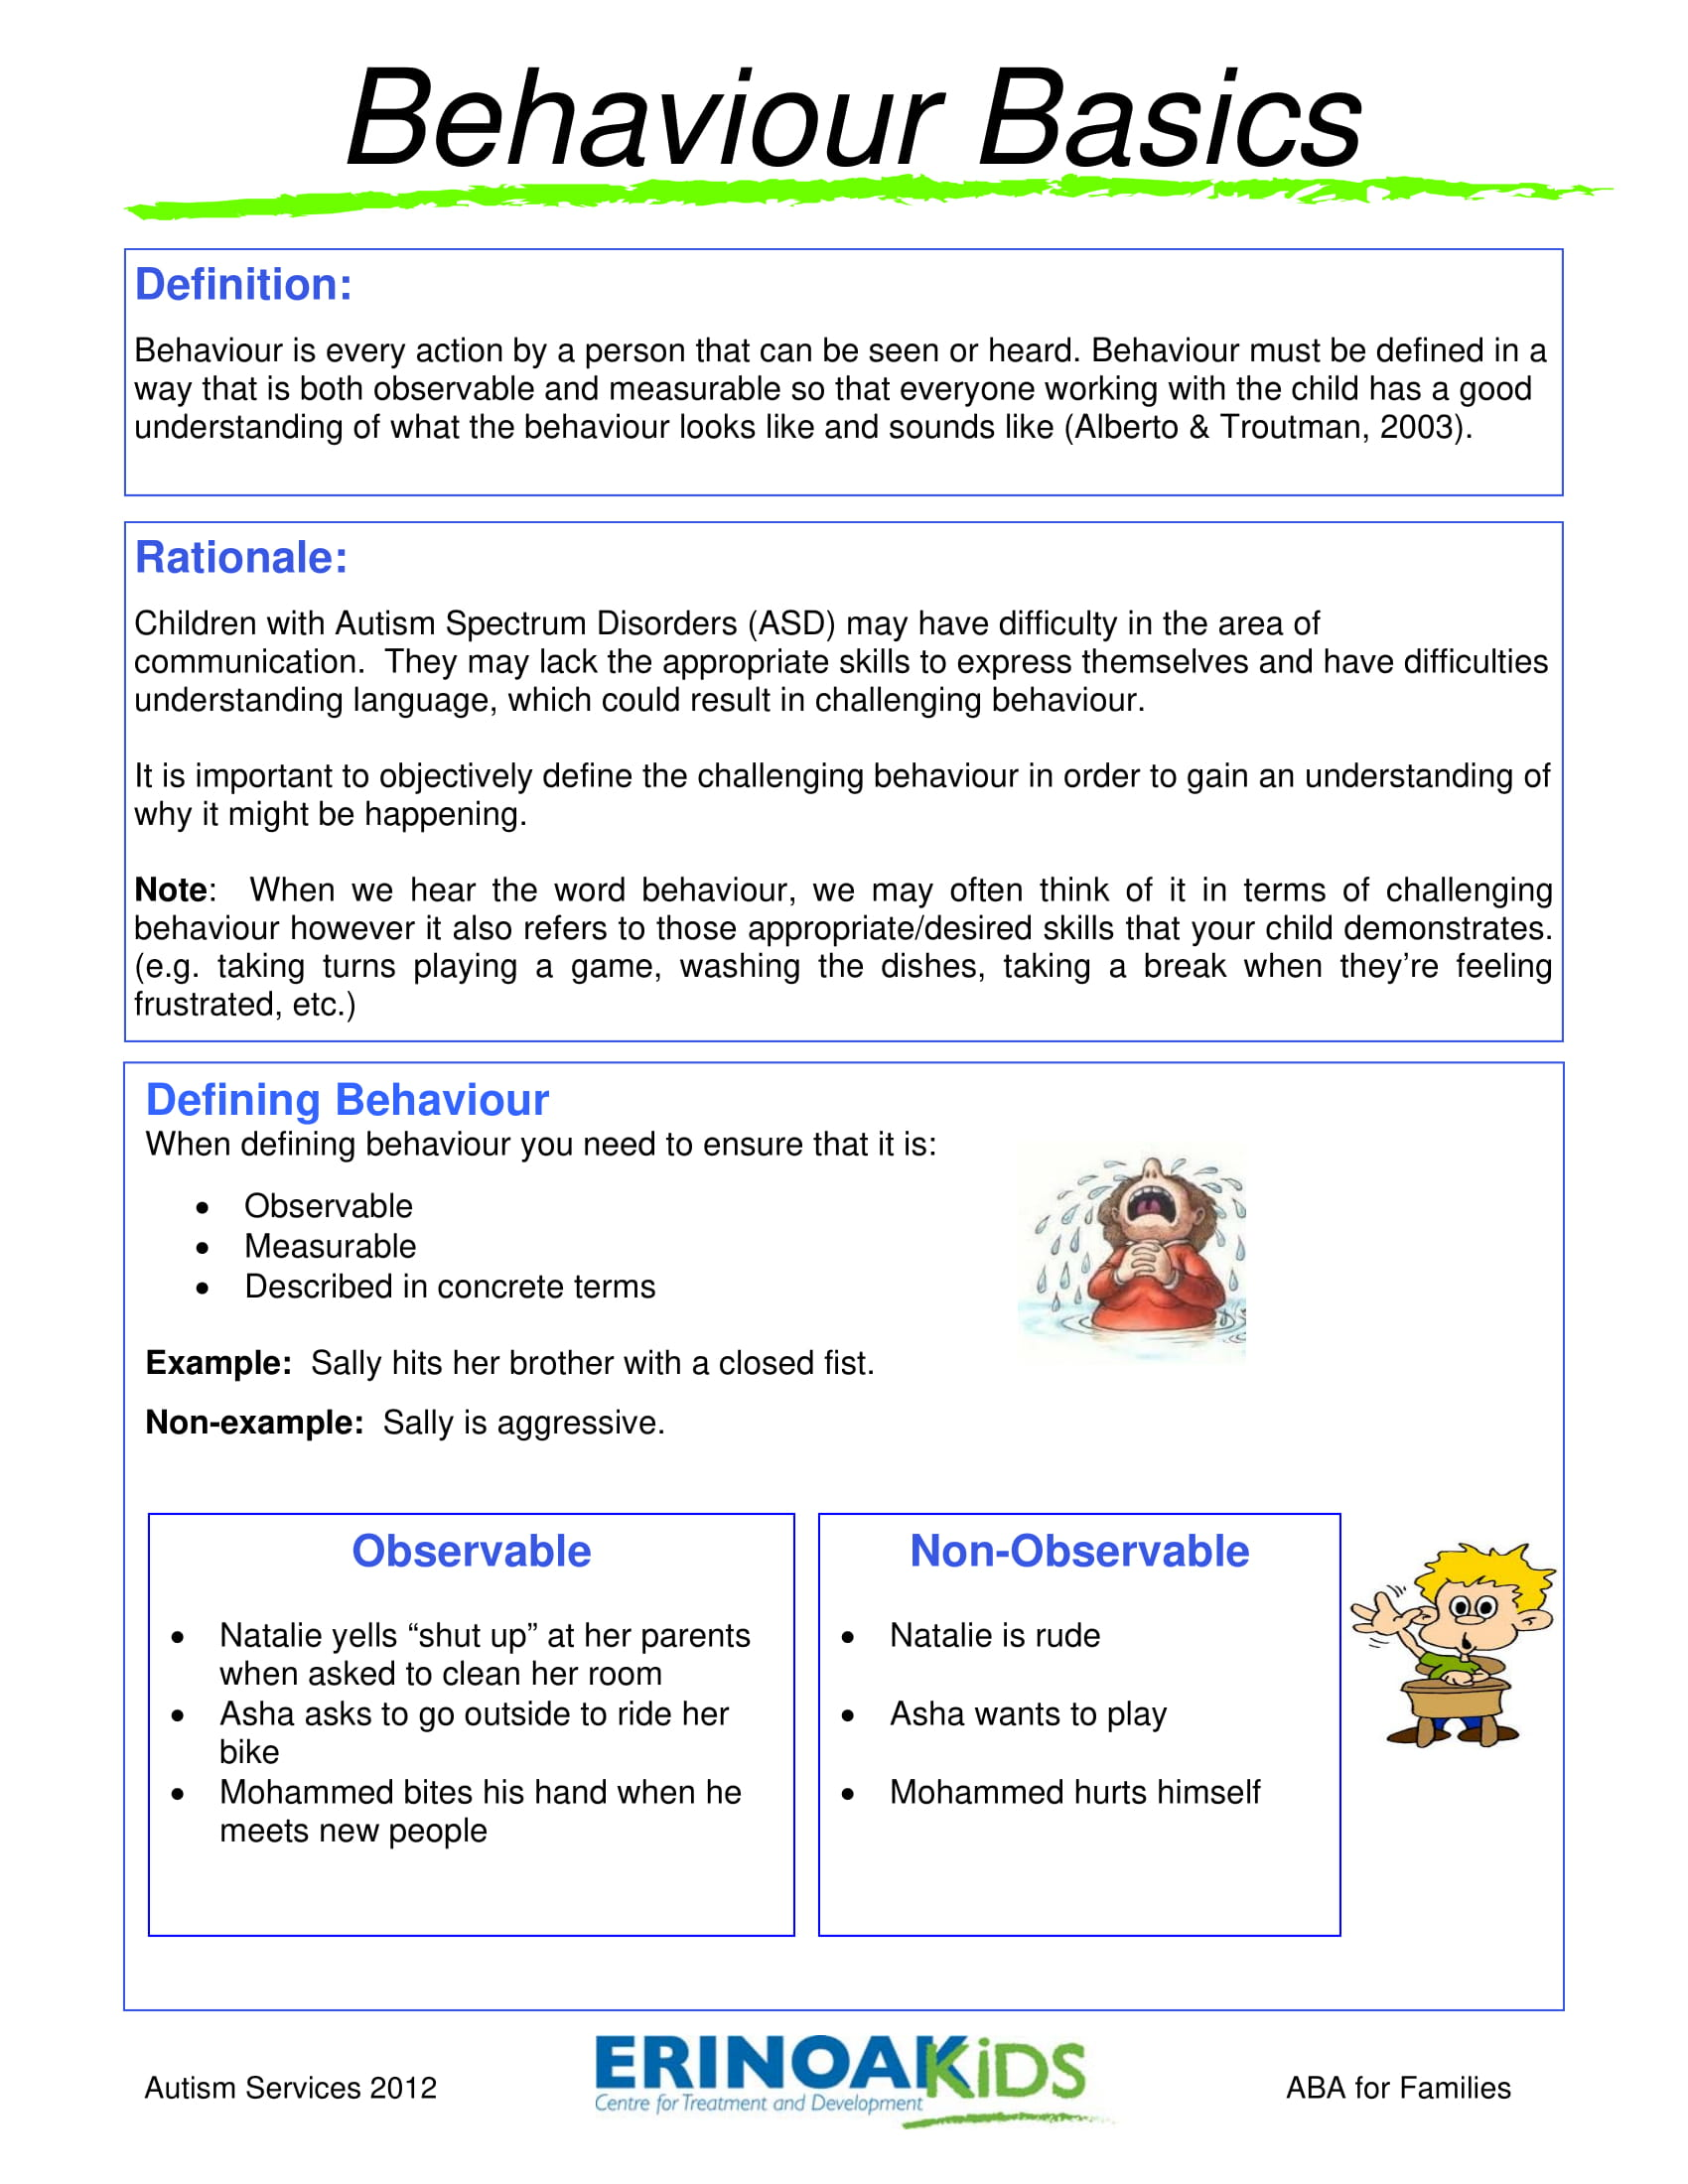 aba for families behaviour basics 1